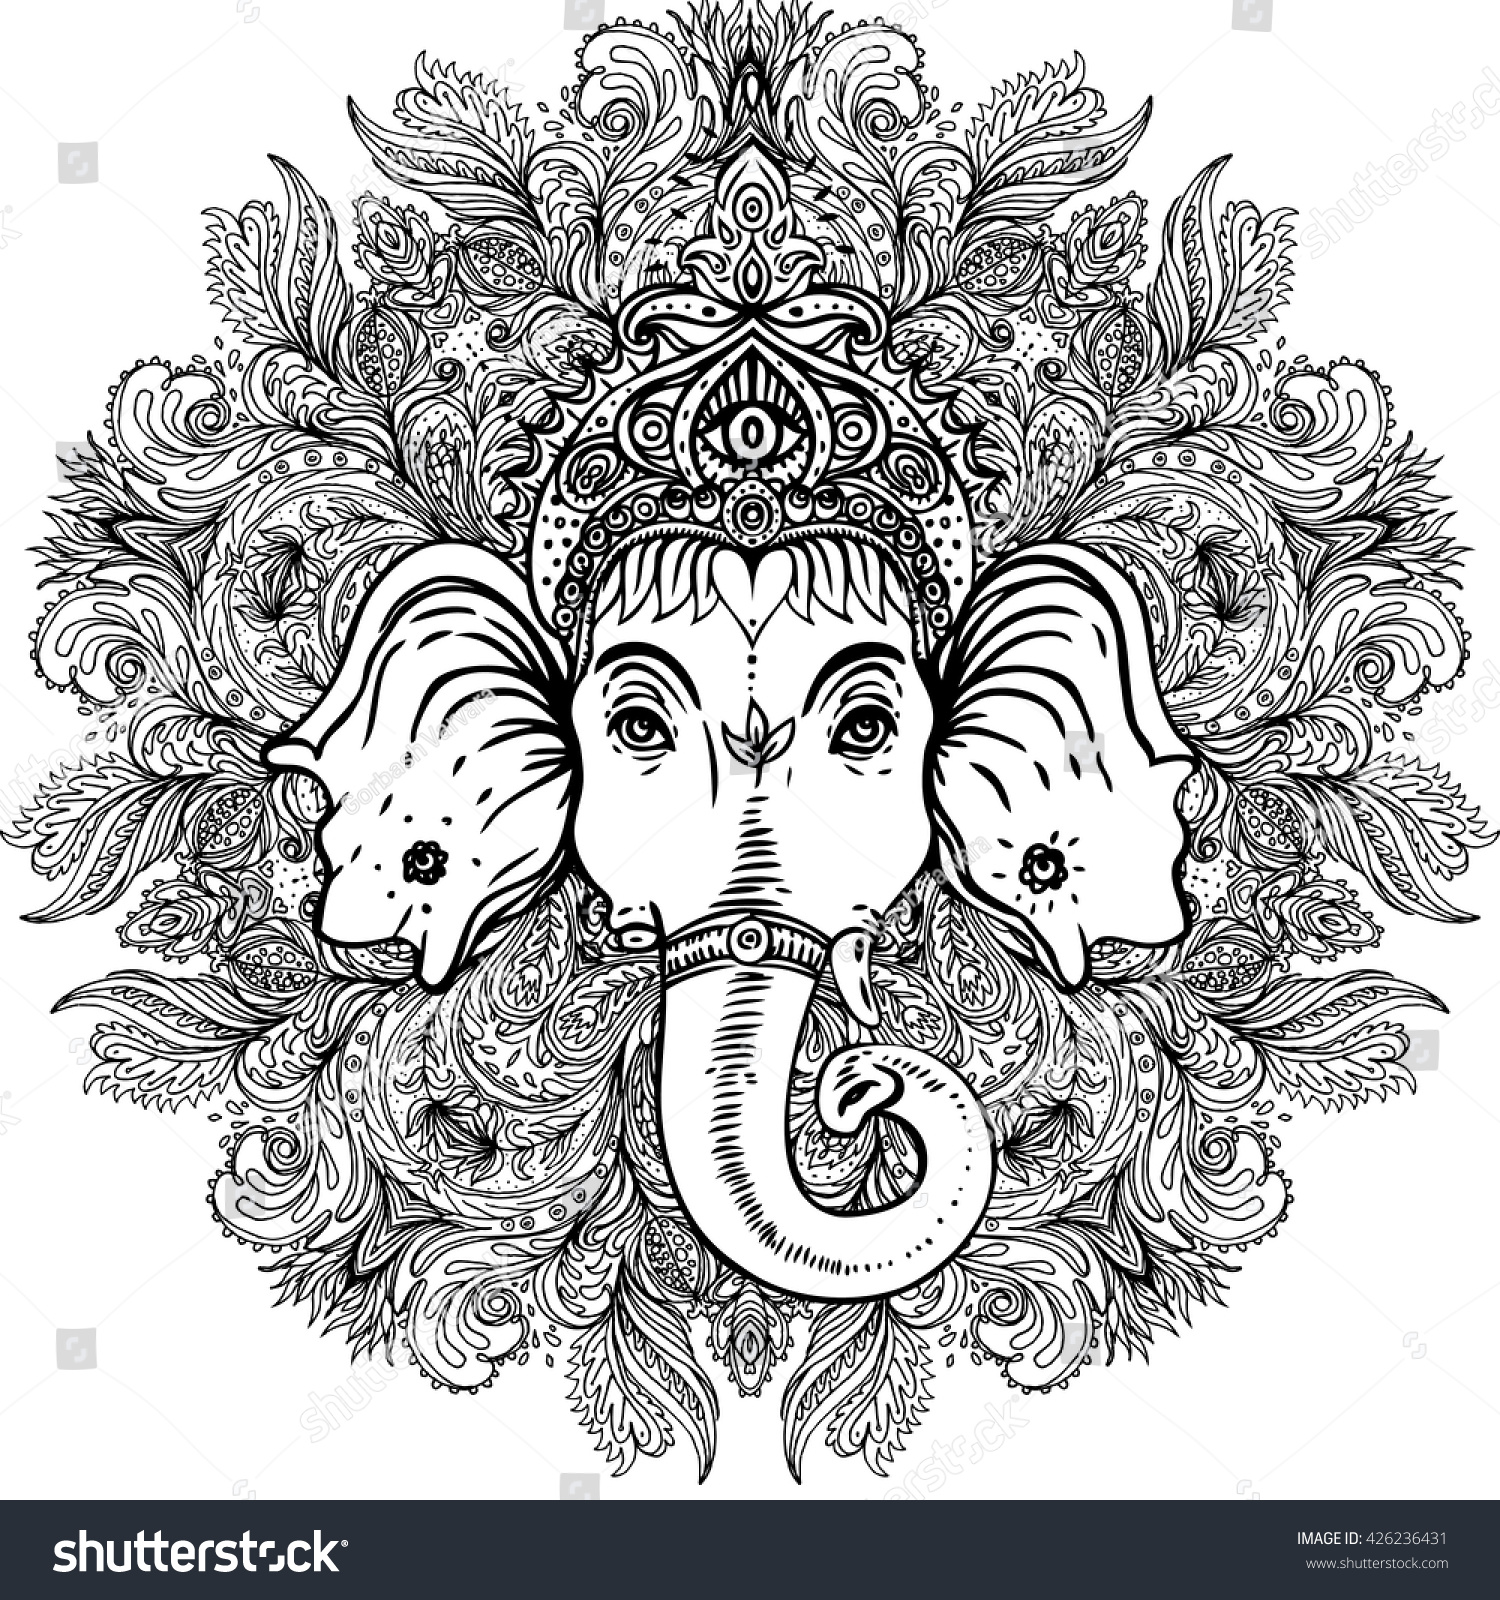 hindu lord ganesha over ornate mandala stock vector 426236431